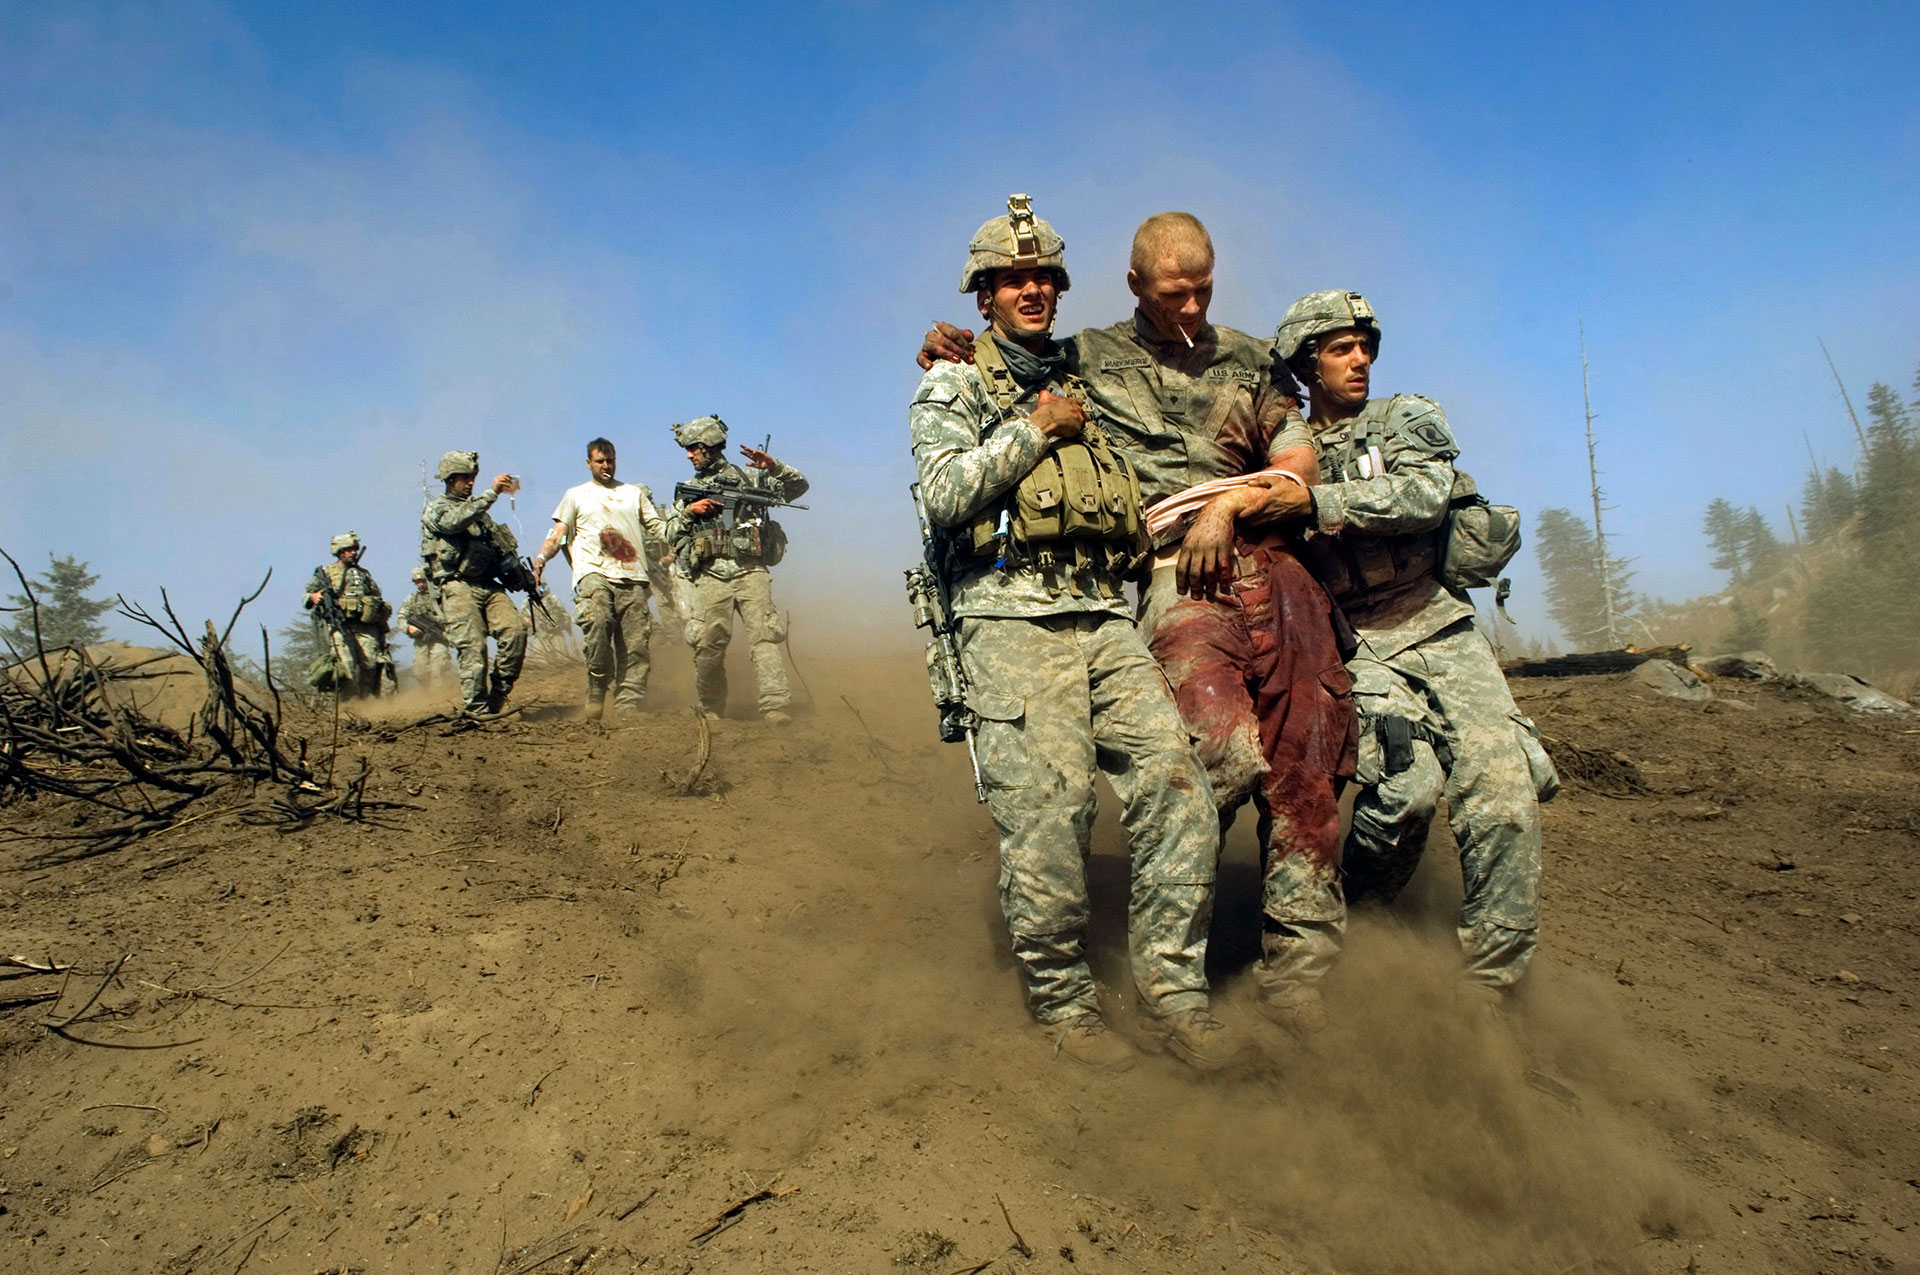 KORENGAL VALLEY, AFGHANISTAN. Specialist Carl Vandeberge, center, and Sargeant Kevin Rice, behind, are assisted as they walk to a medevac helicopter minutes after they were both shot in the stomach during a Taliban ambush, which killed one soldier, and wounded both of them. Spc. Carl Vandeberge and Sgt. Kevin Rice, were flown out immediately for surgery. October 23, 2007.